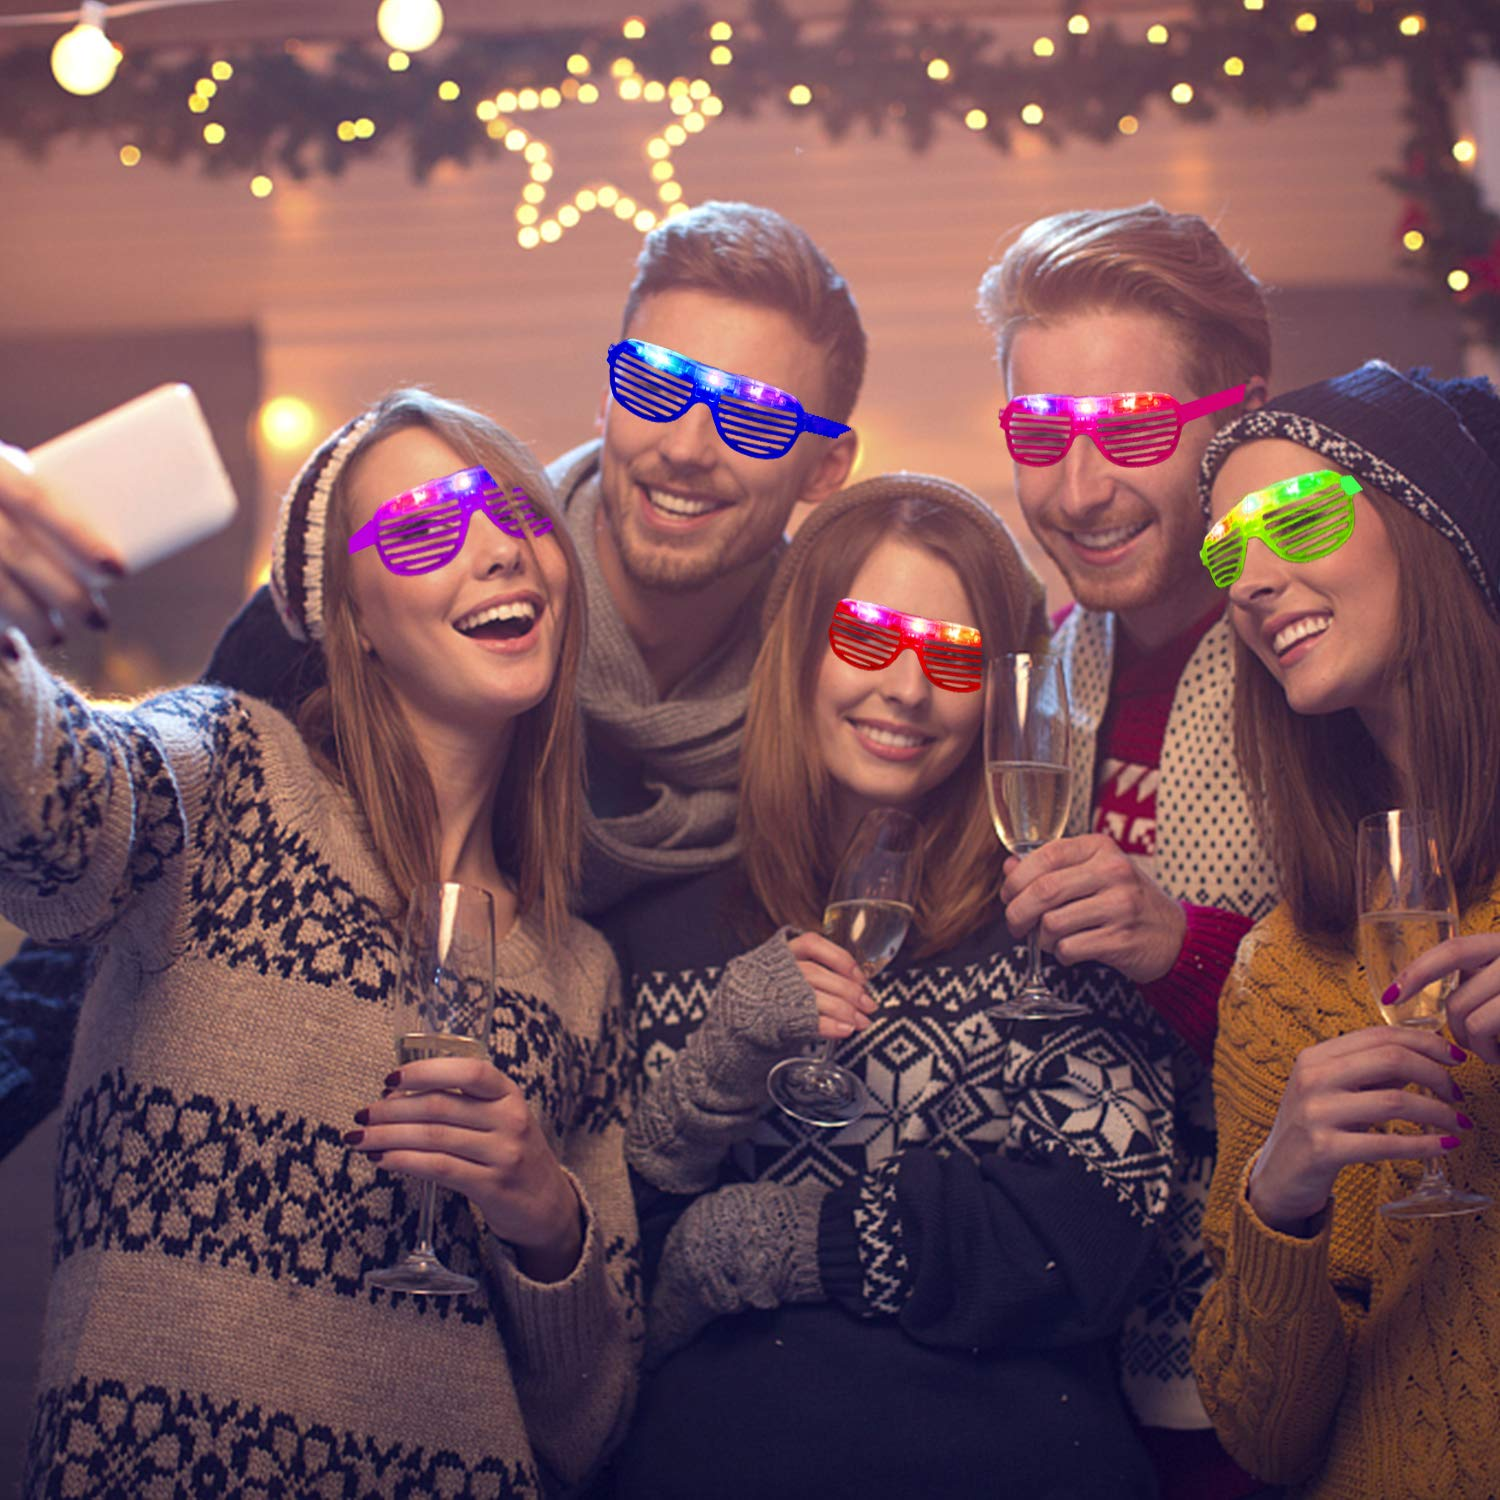 20 Pack Party Favors LED Light Up Glasses Glow in The Dark Party Supplies Toys Flashing Glasses Neon Shutter DJ SunGlasses Parties Decorations Holiday Birthday Gifts for Adult Kids by CHARMCZ (Image #5)